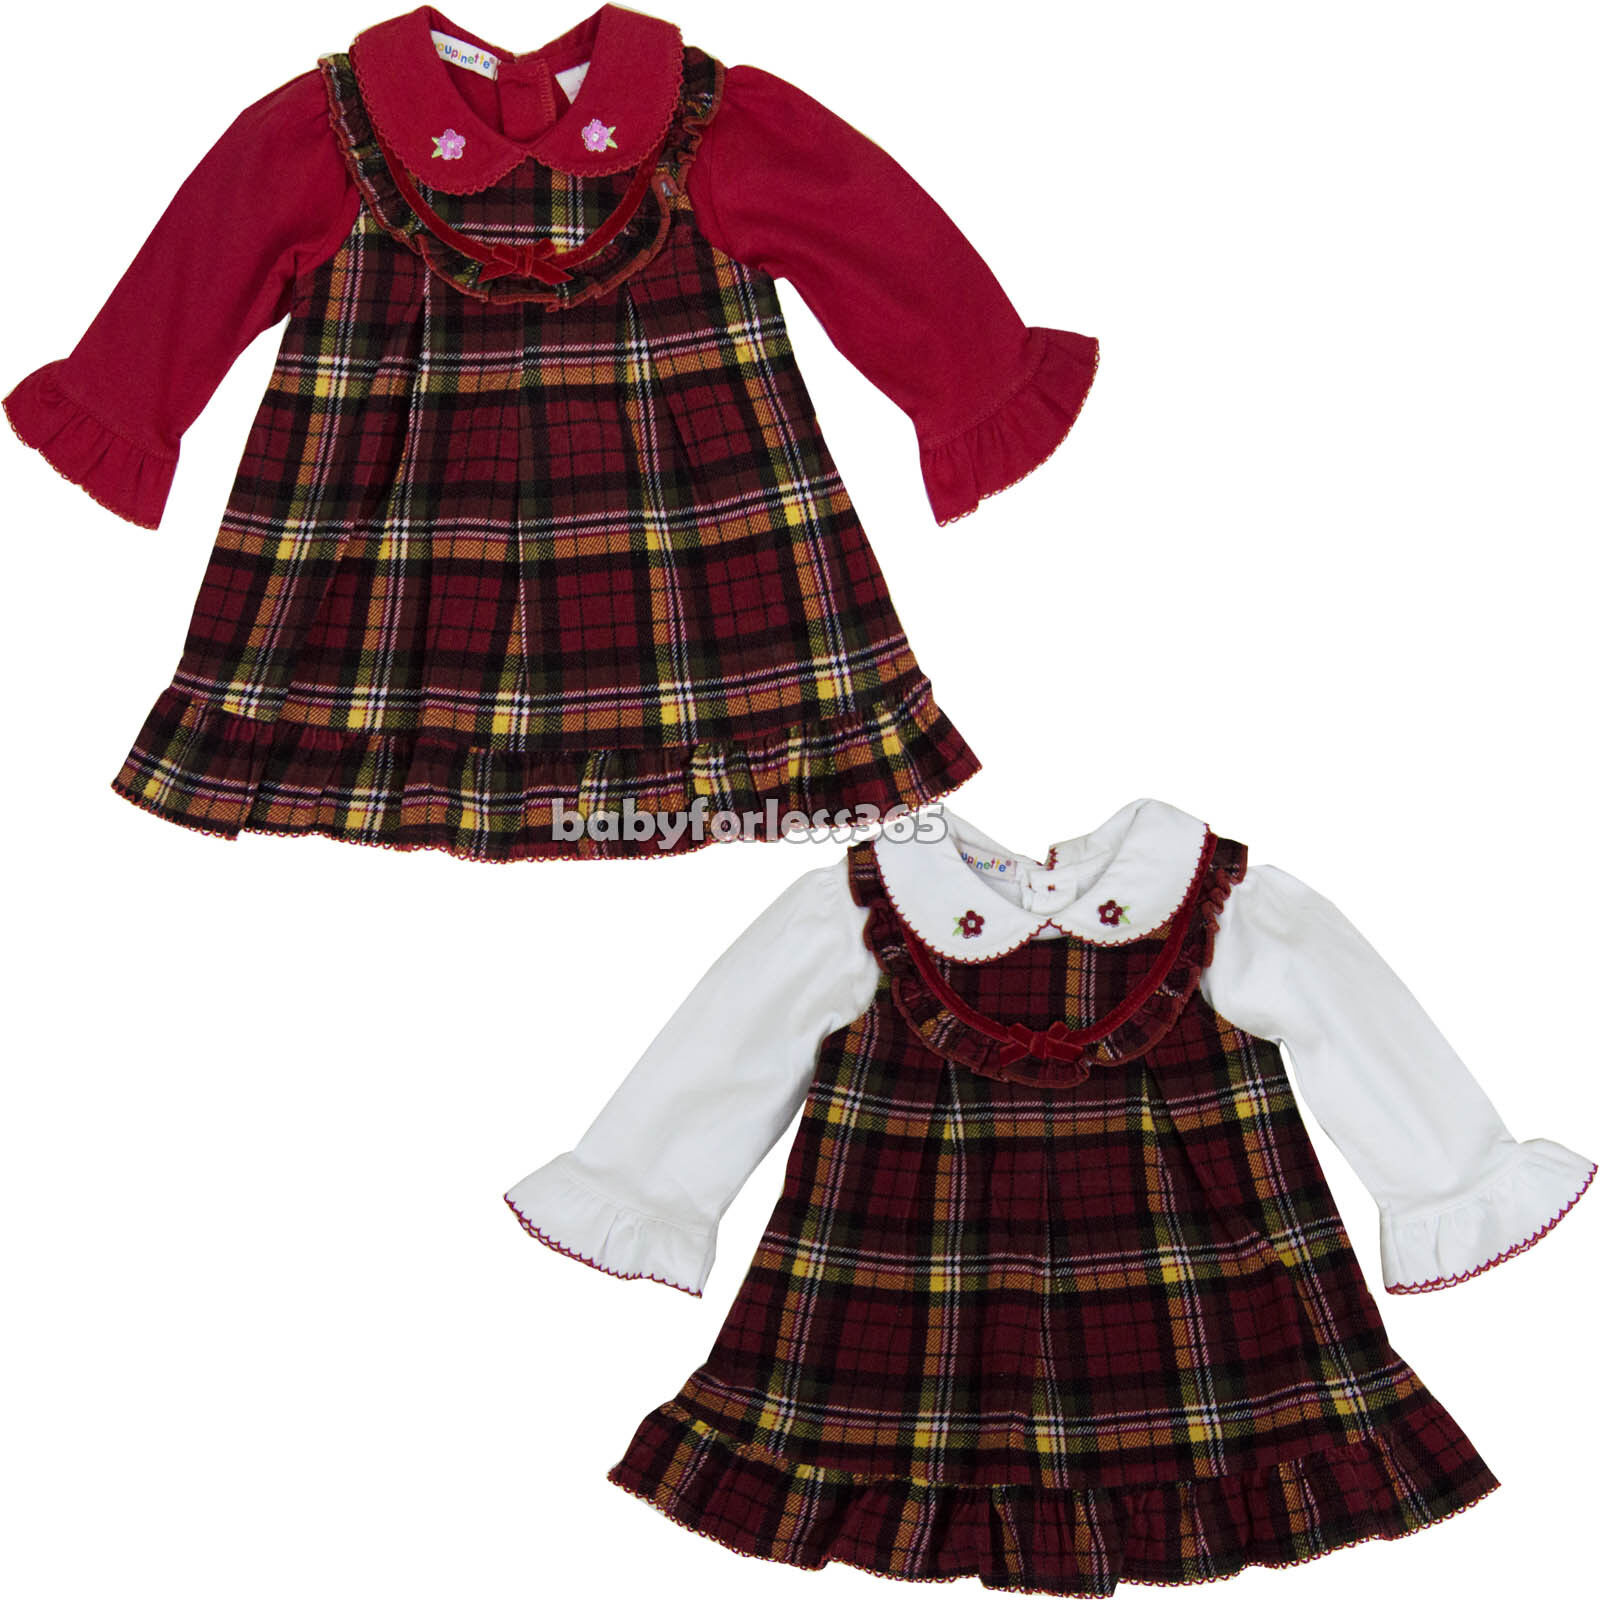 New Baby Girls Long Sleeve Winter Dress Outfits Clothing Size 3 6 9